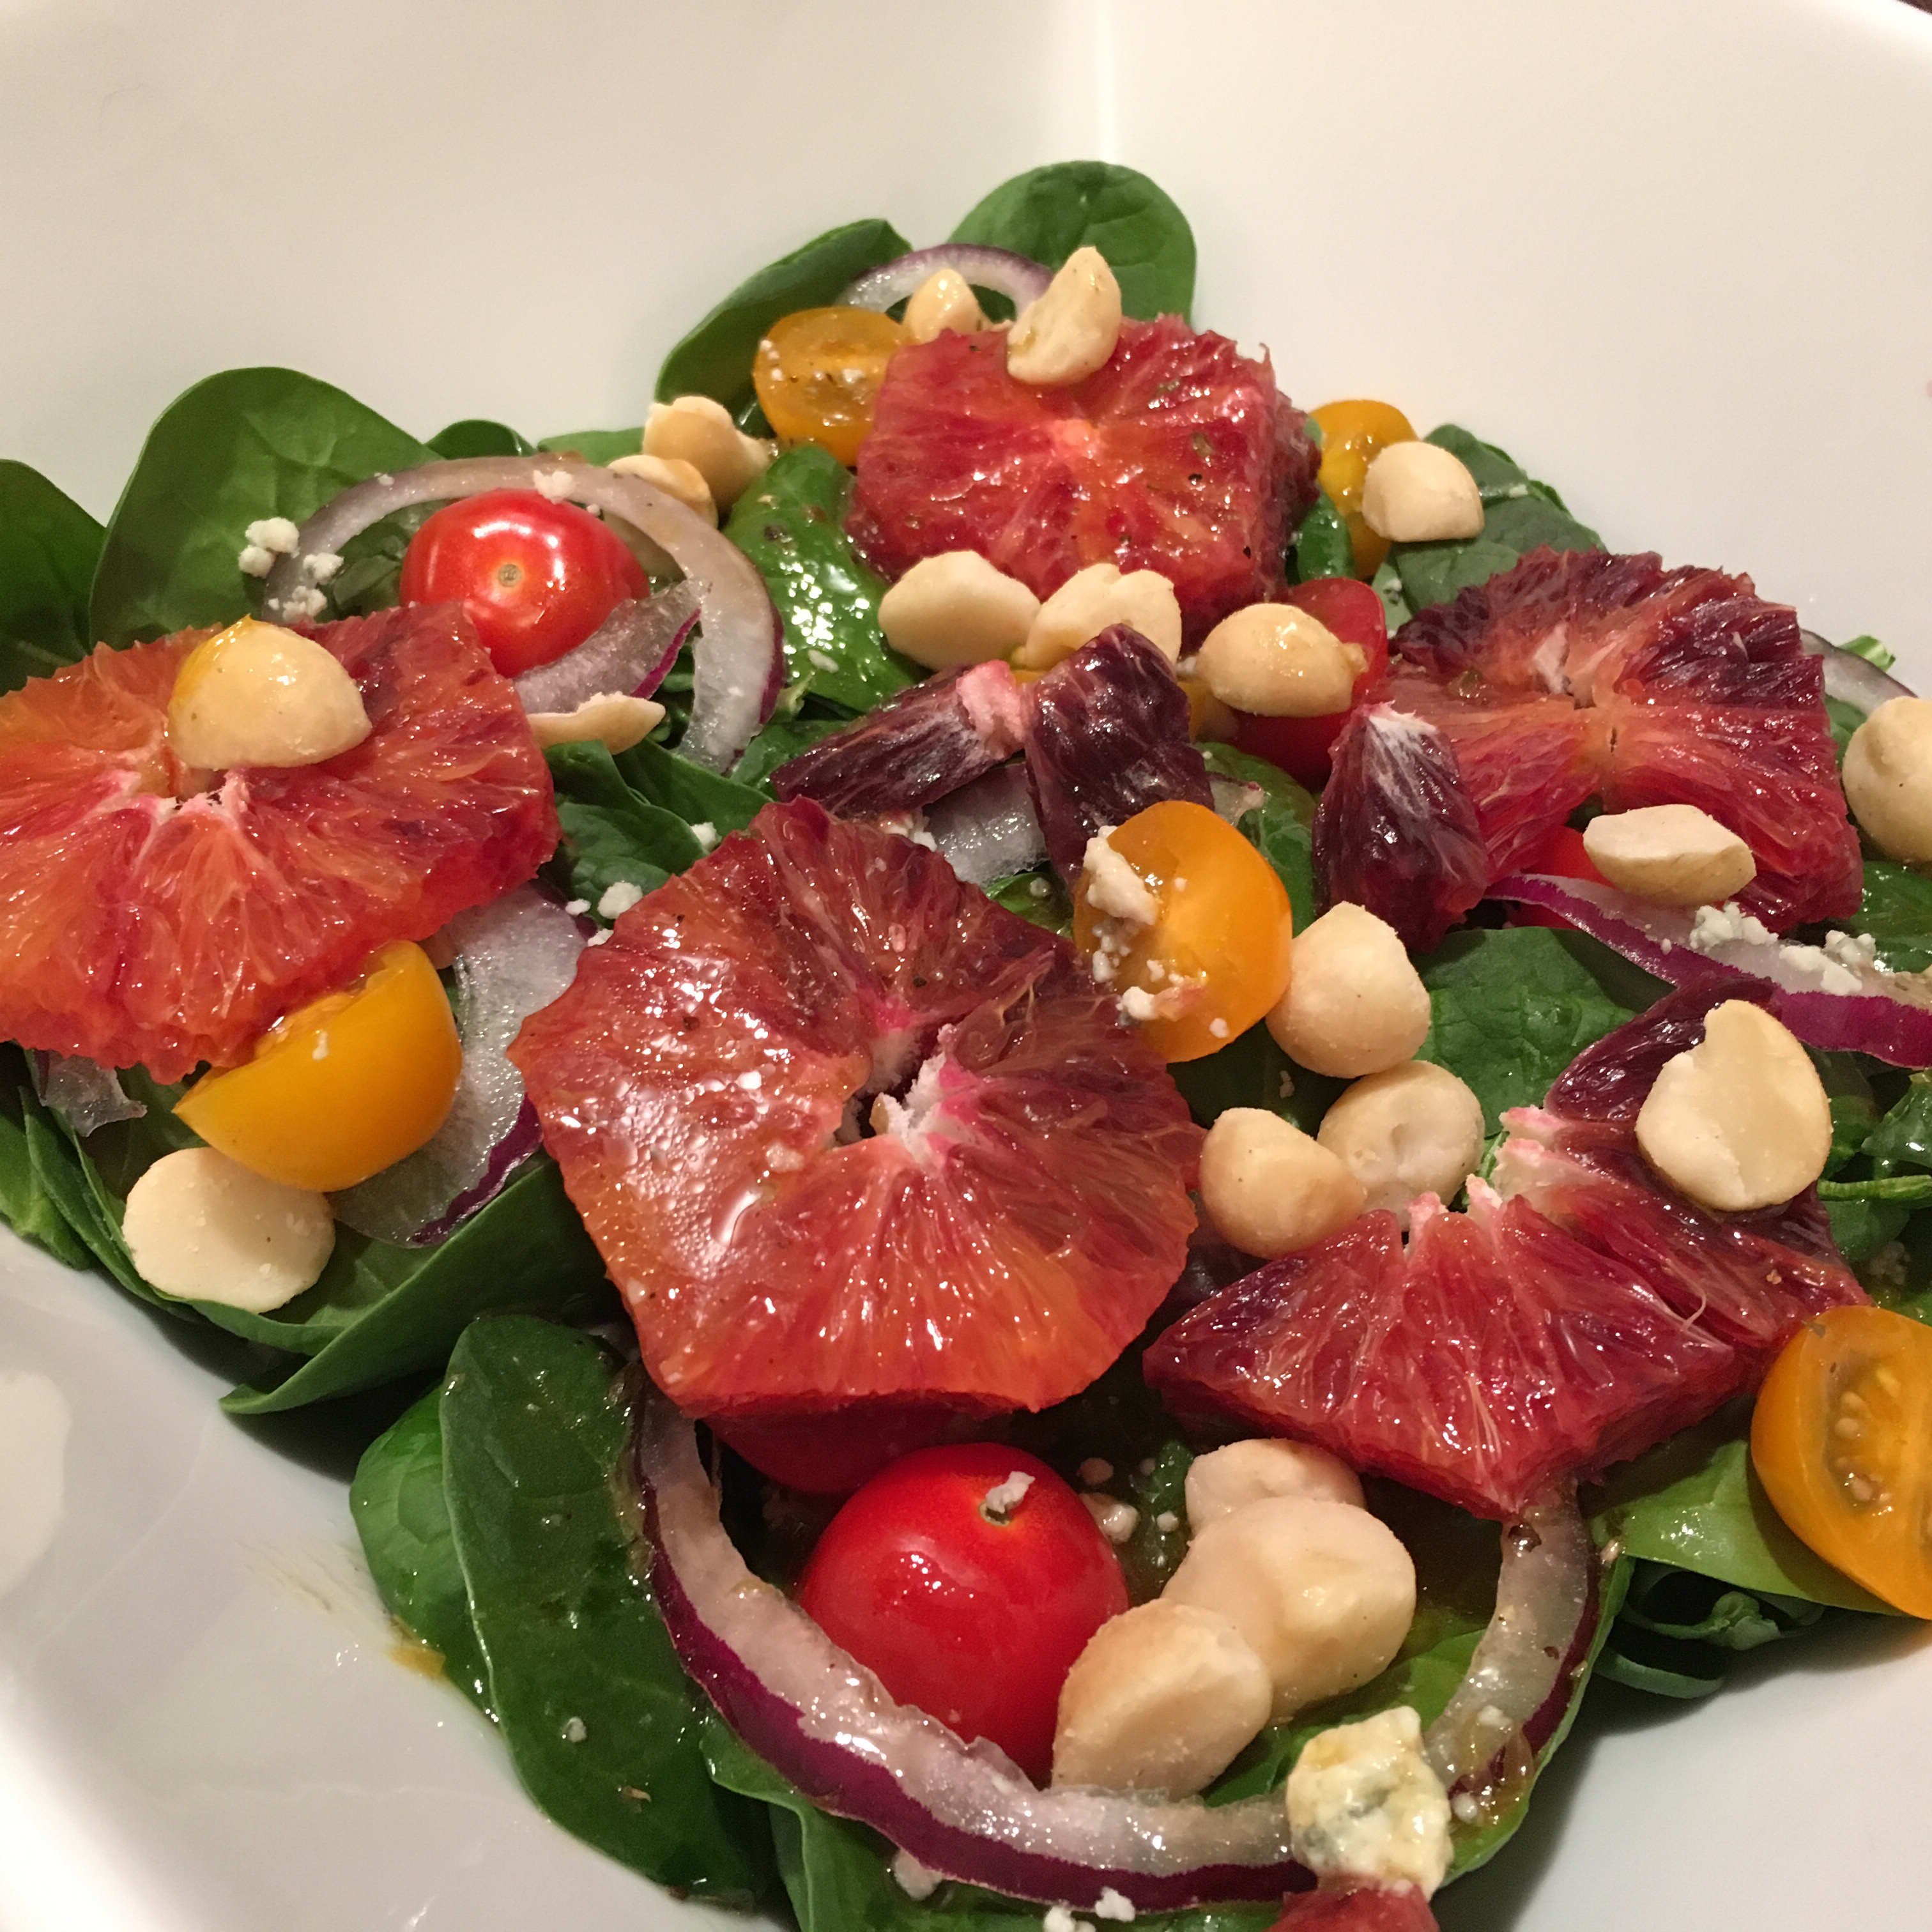 Spinach Salad with Blood Oranges and Macadamia Nuts